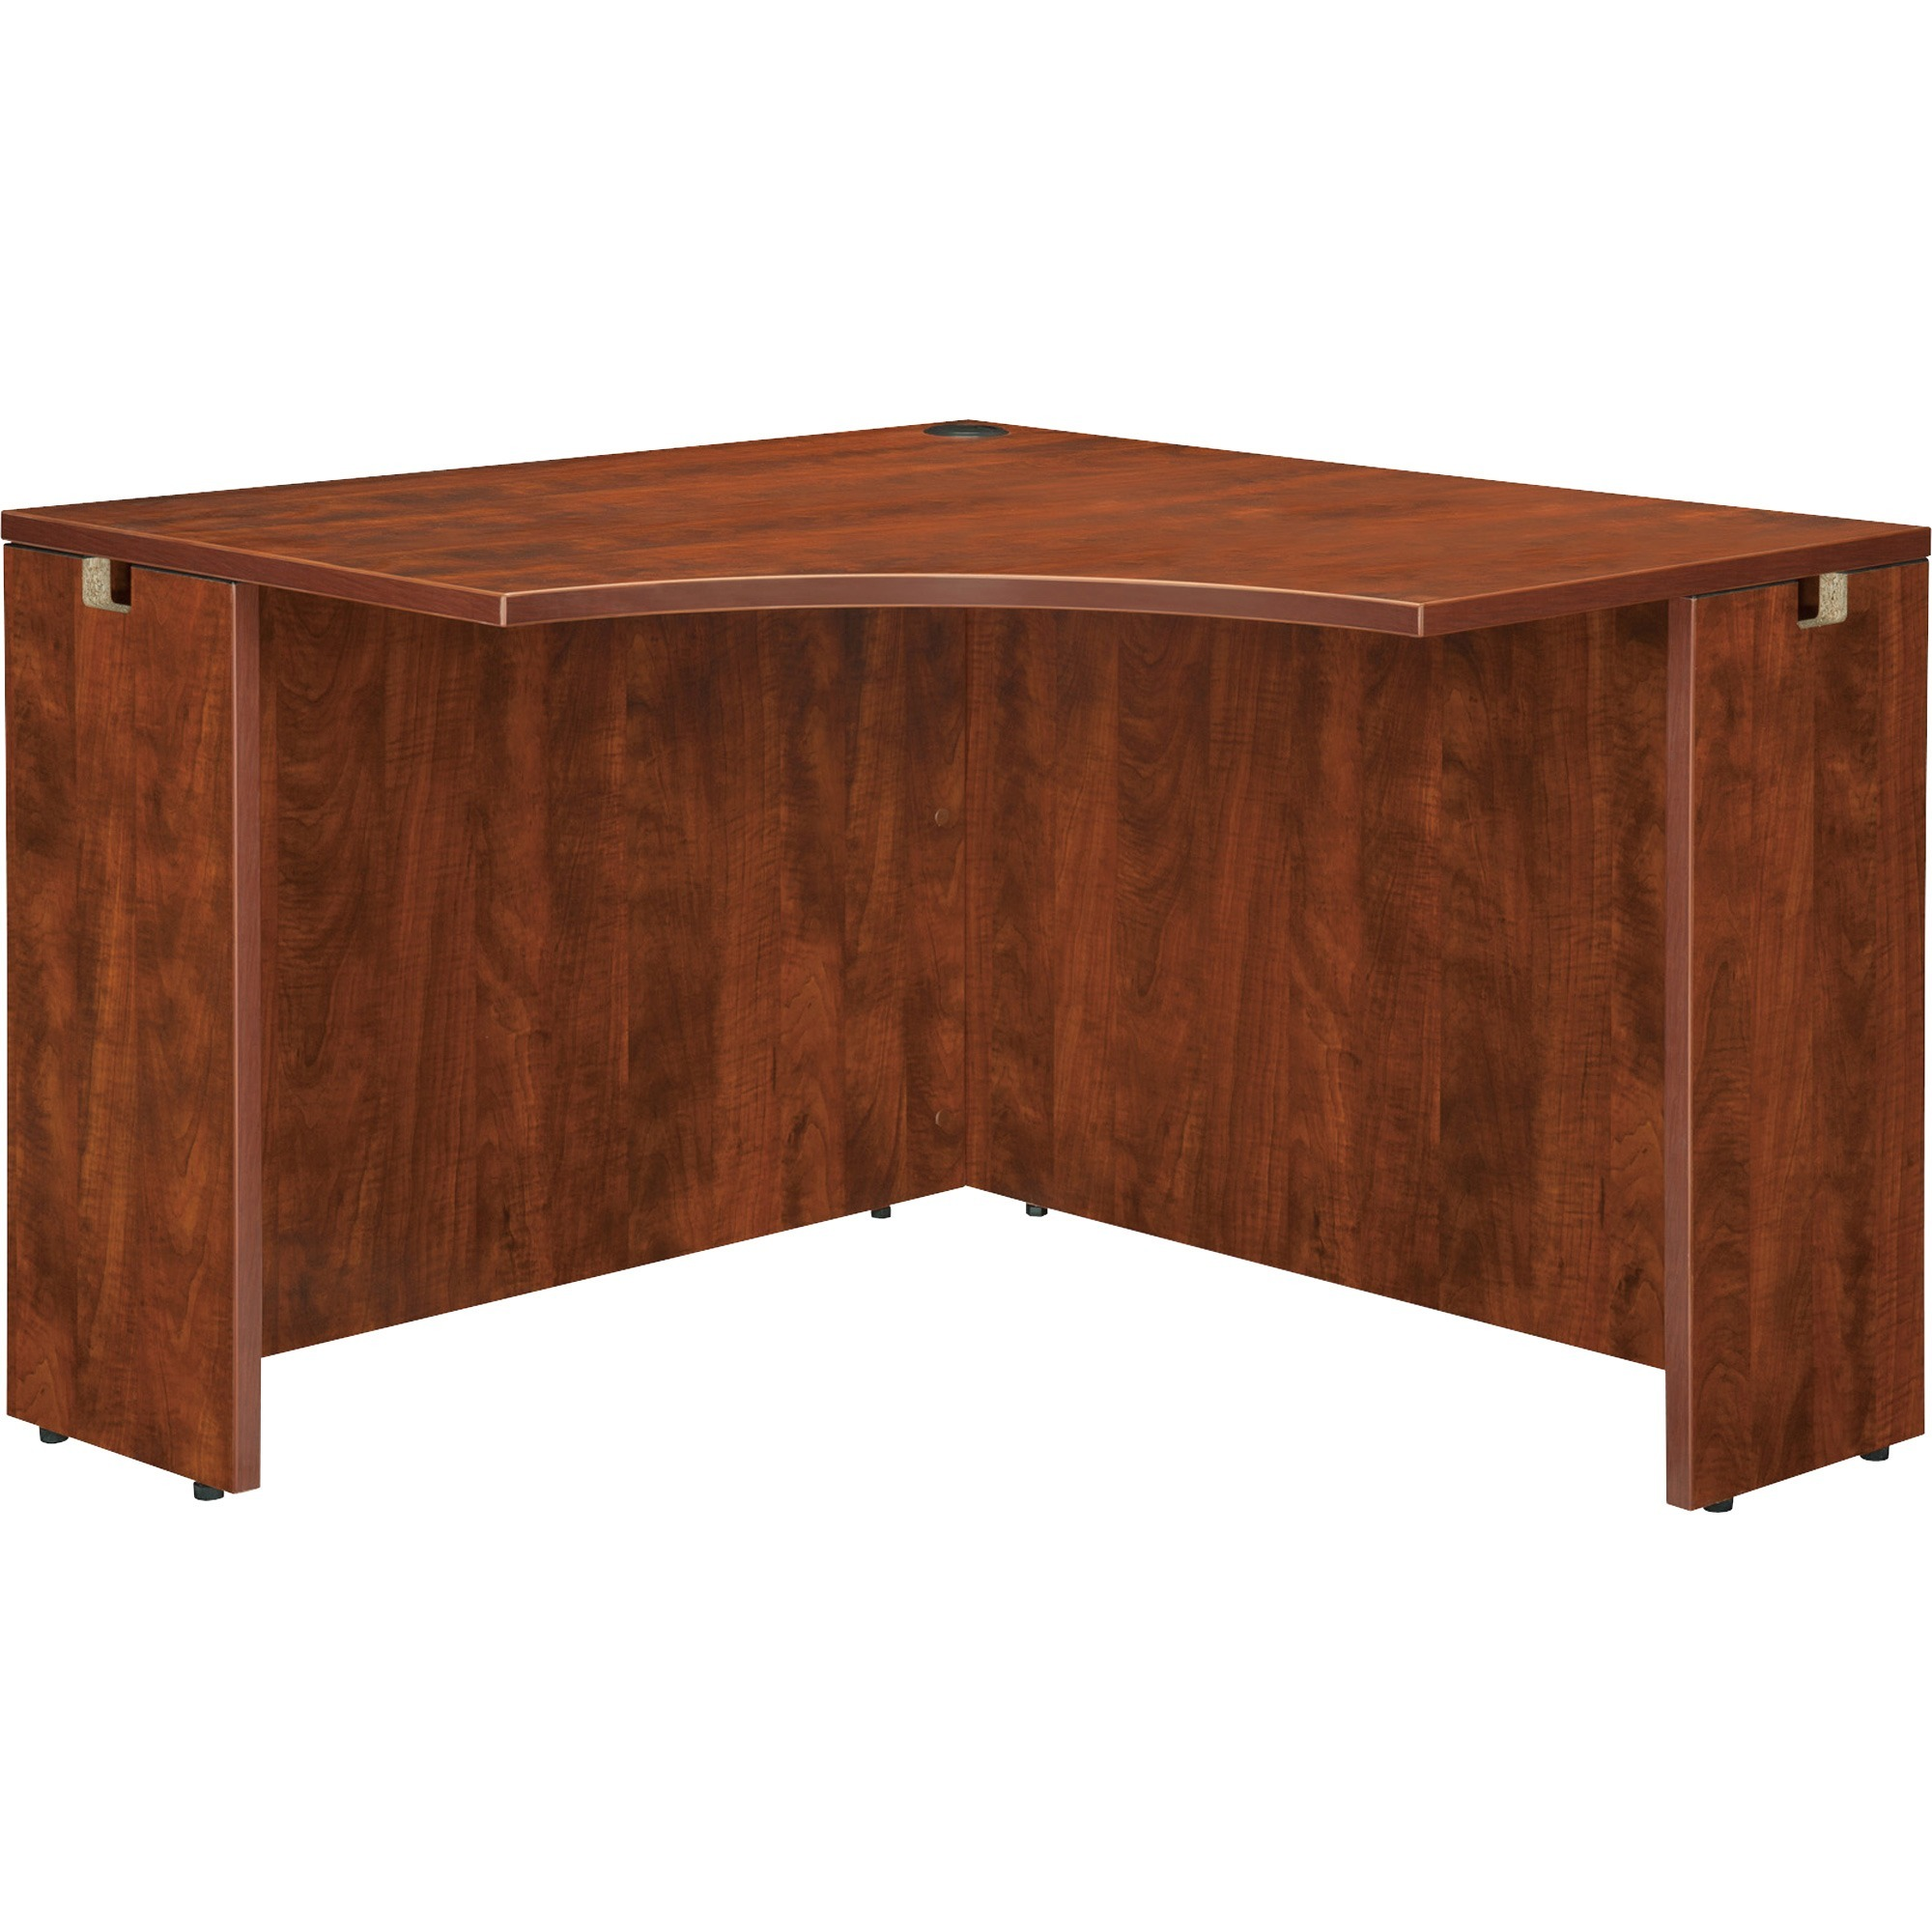 Ocean Stationery and Office Supplies :: Furniture